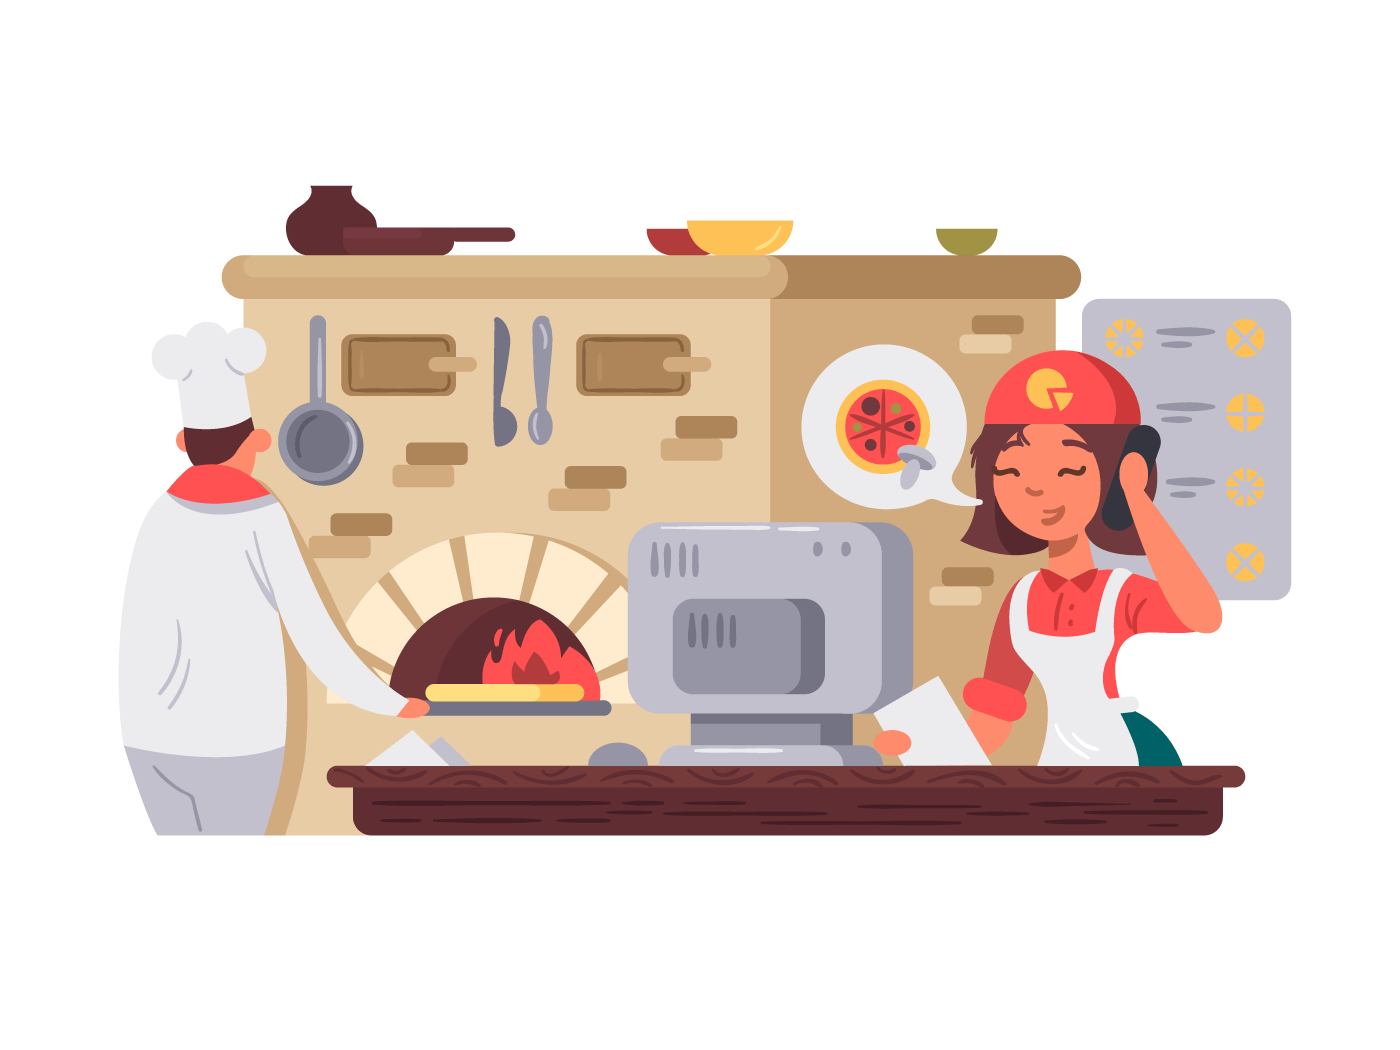 Kitchen in pizzeria. Chef prepares pizza, operator takes order. Vector illustration